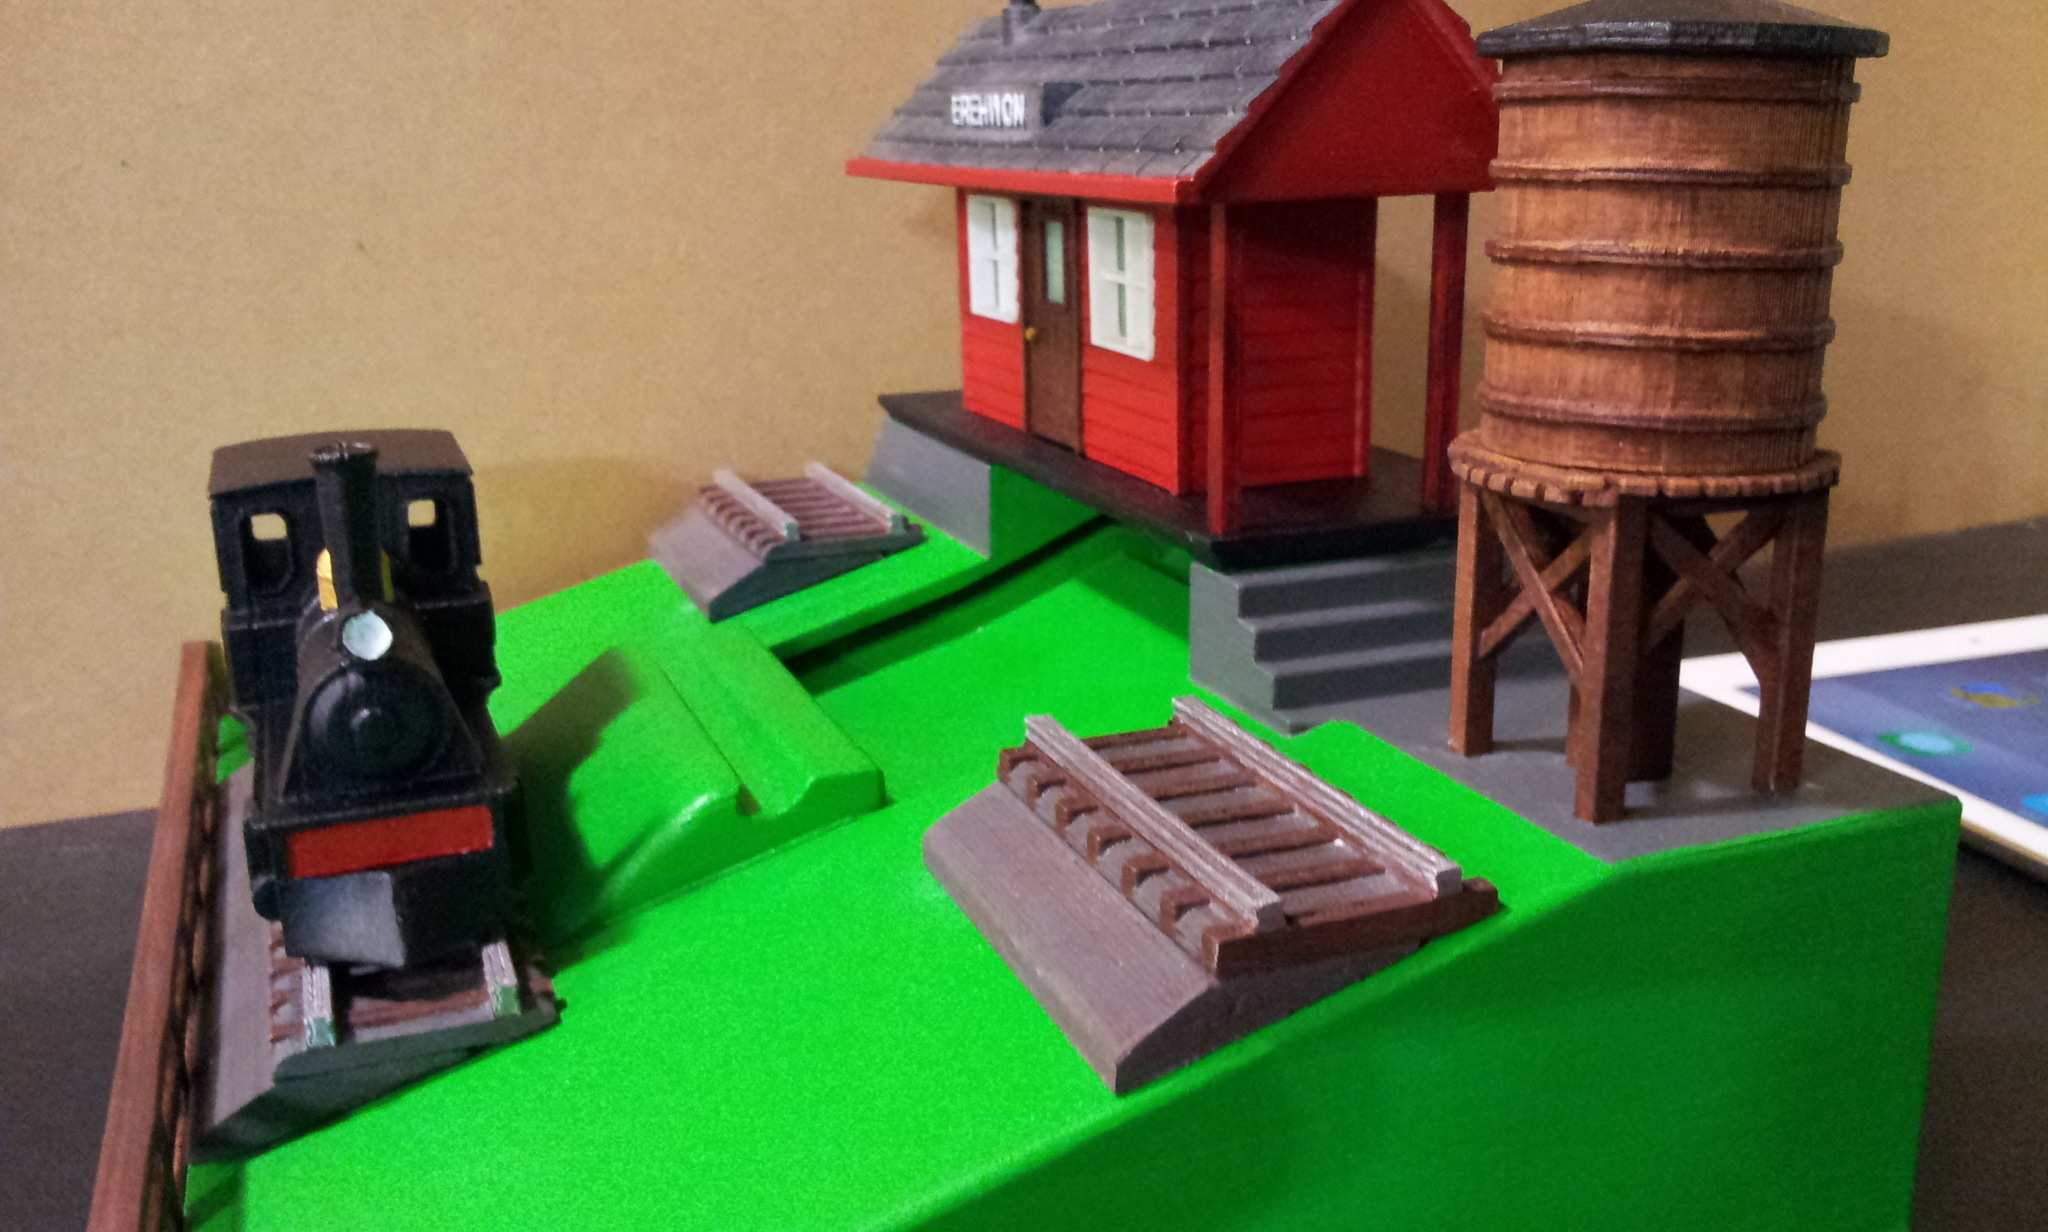 20150502_164046.jpg Download free STL file IPAD STAND (STEAM ENGINE) • 3D printing object, cmtm